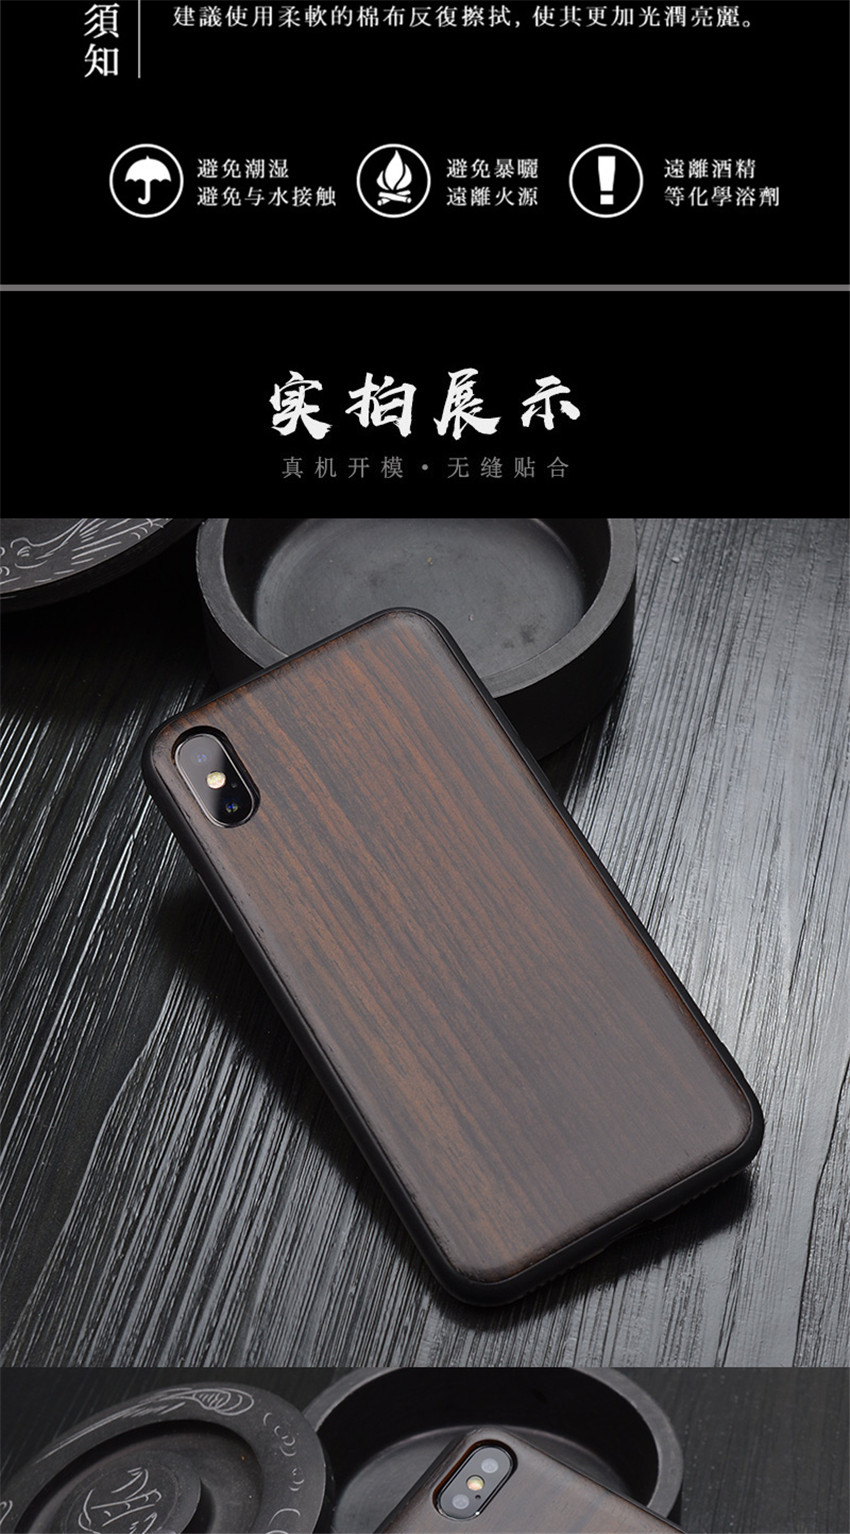 2018 New For iPhone X Case Black Ebony Wood Cover For iPhone X iPhone 10 Carved TPU Bumper Wooden Protective Case 5 (8)